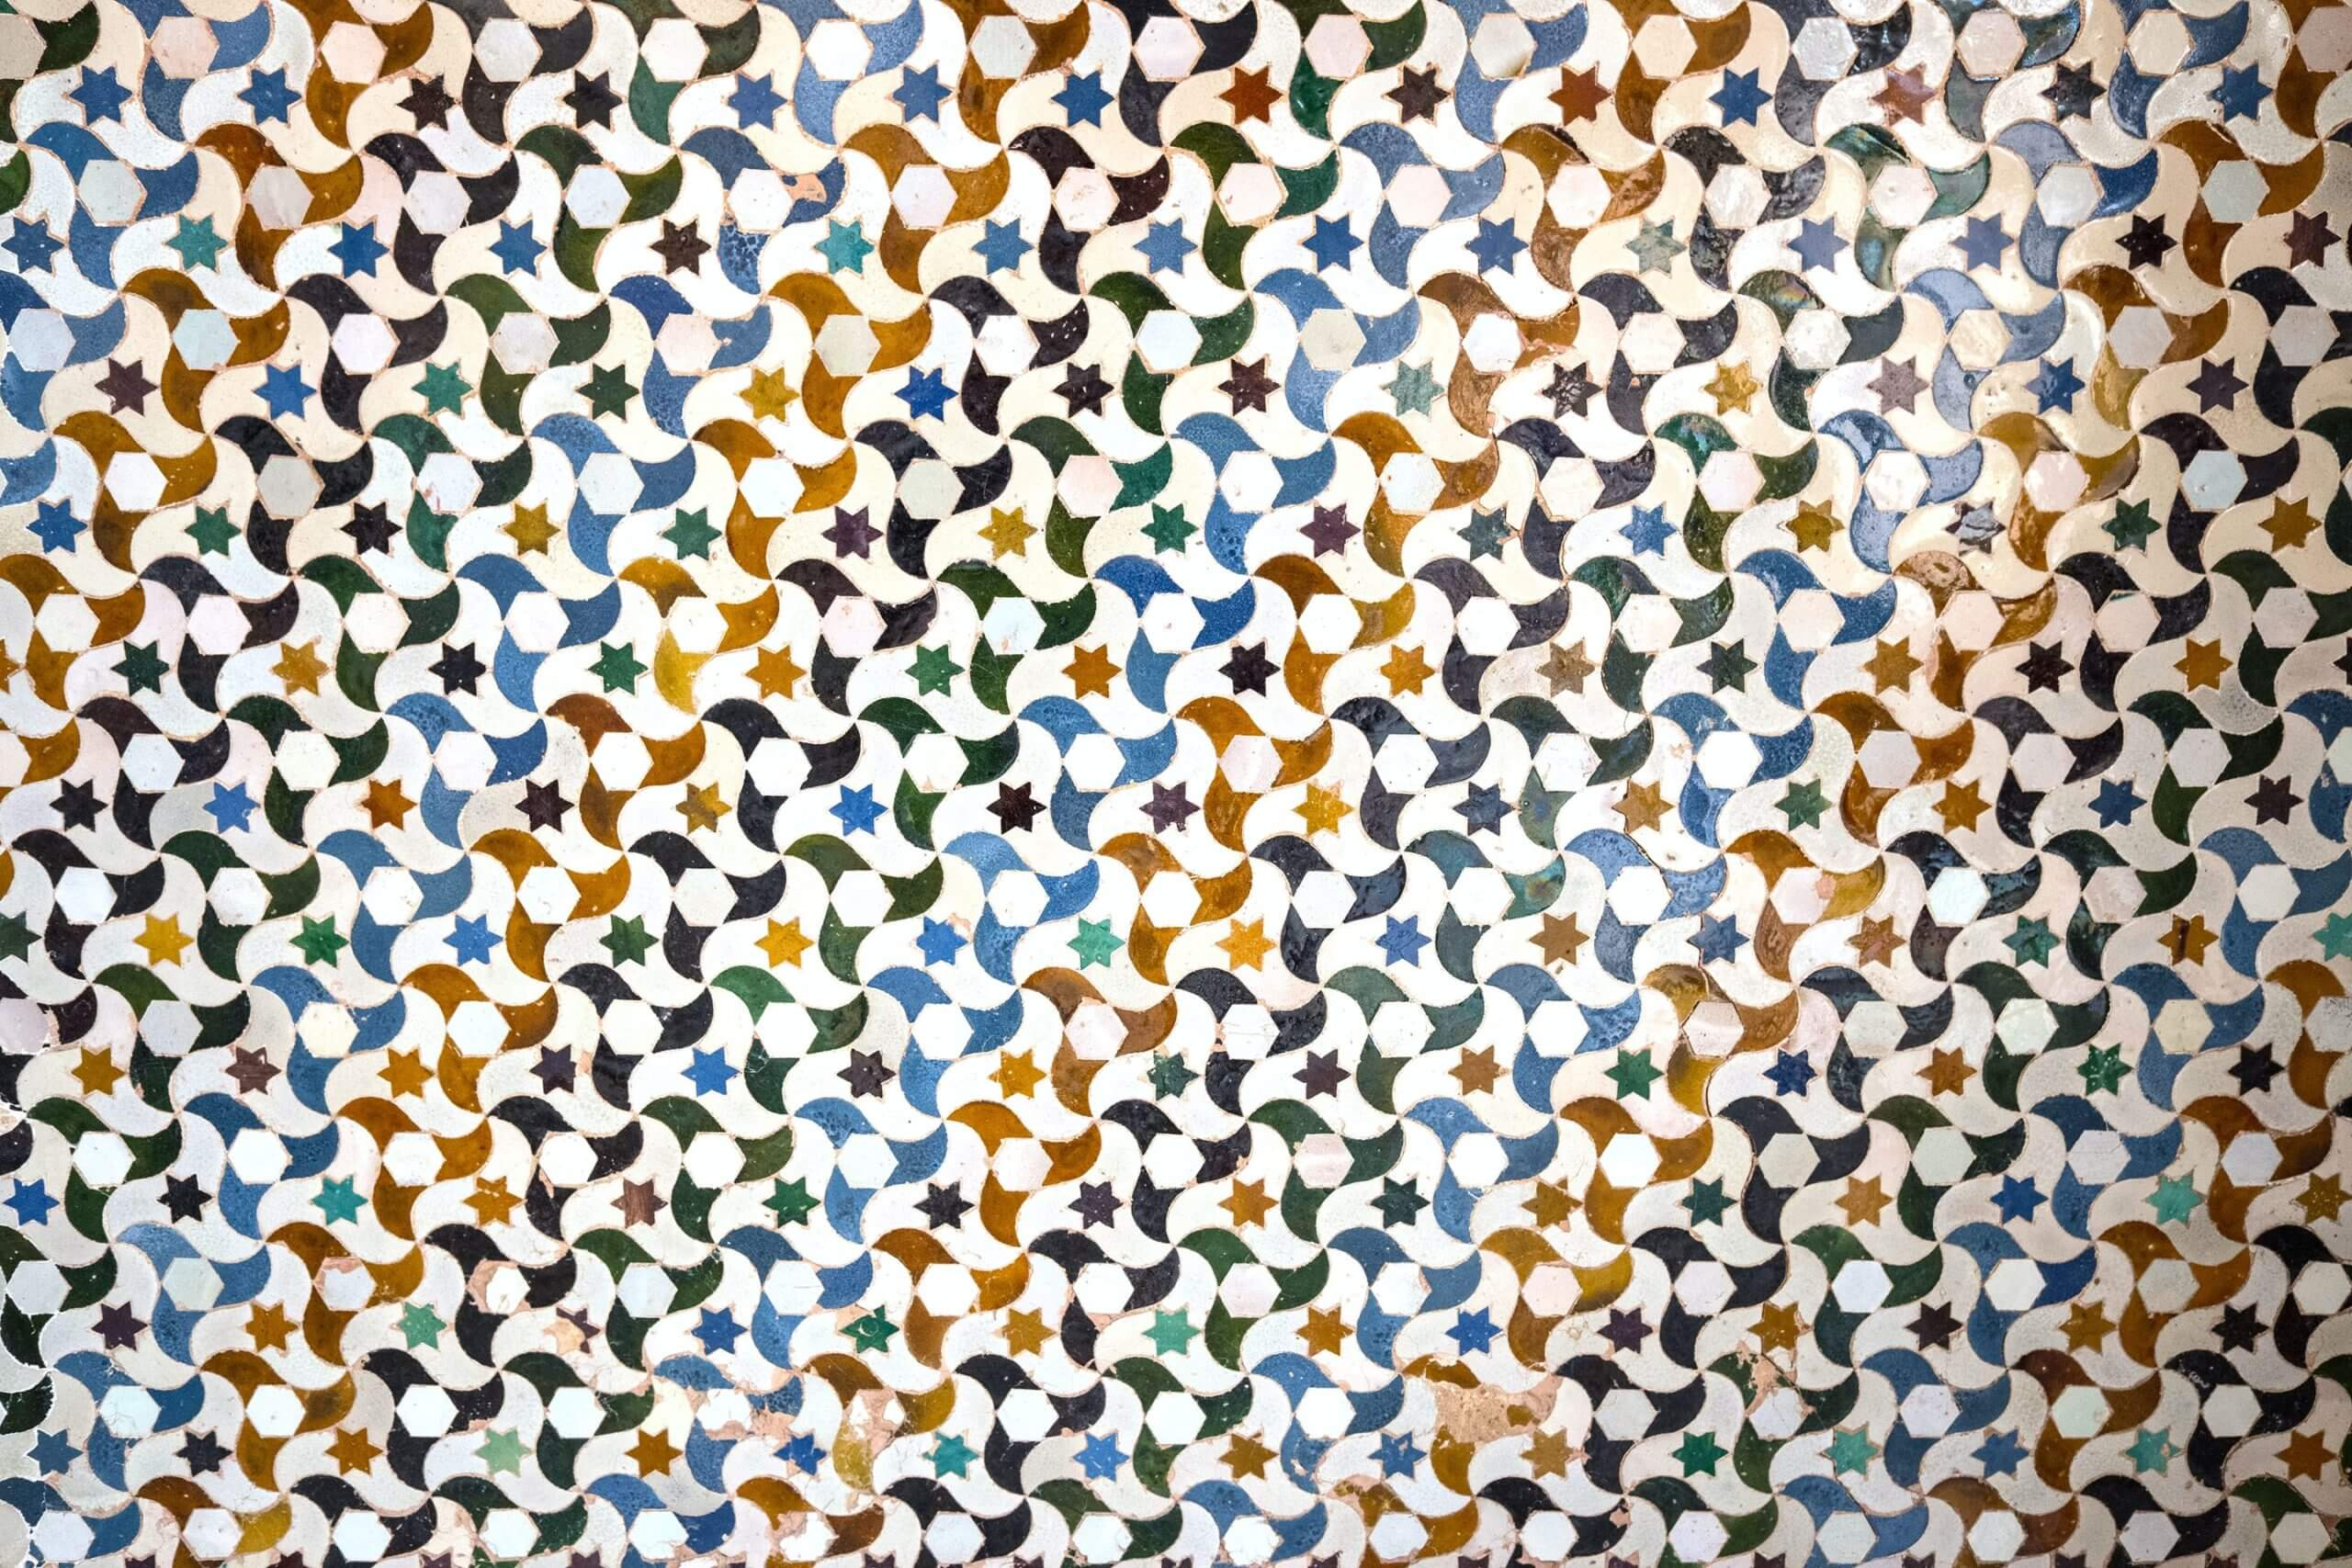 Tessaltation with a colurful pattern